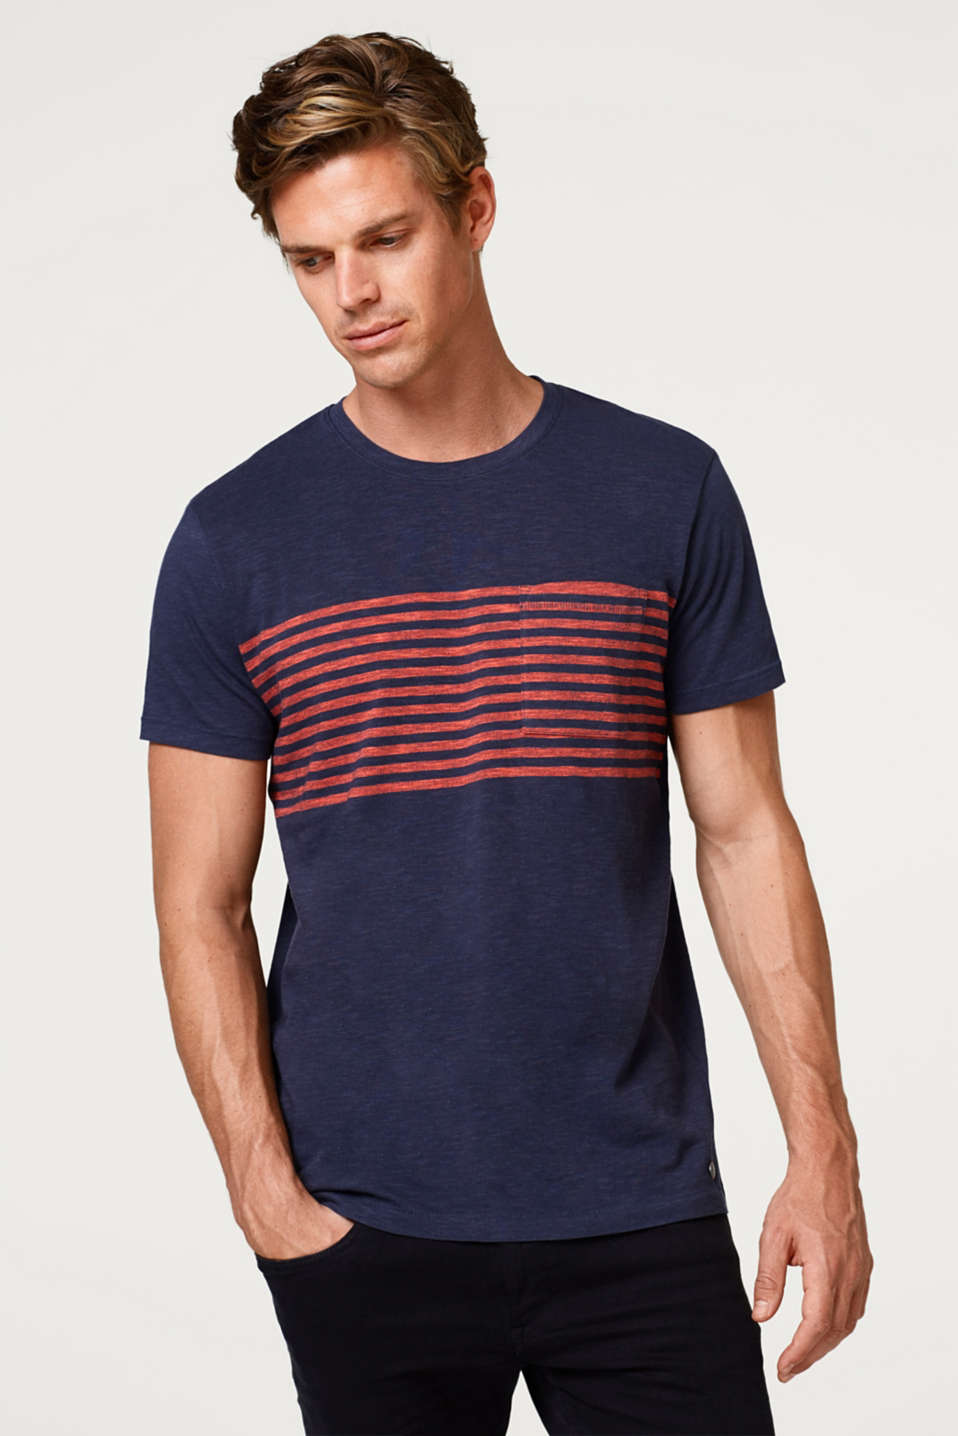 Esprit - Slub jersey T-shirt with stripes, 100% cotton